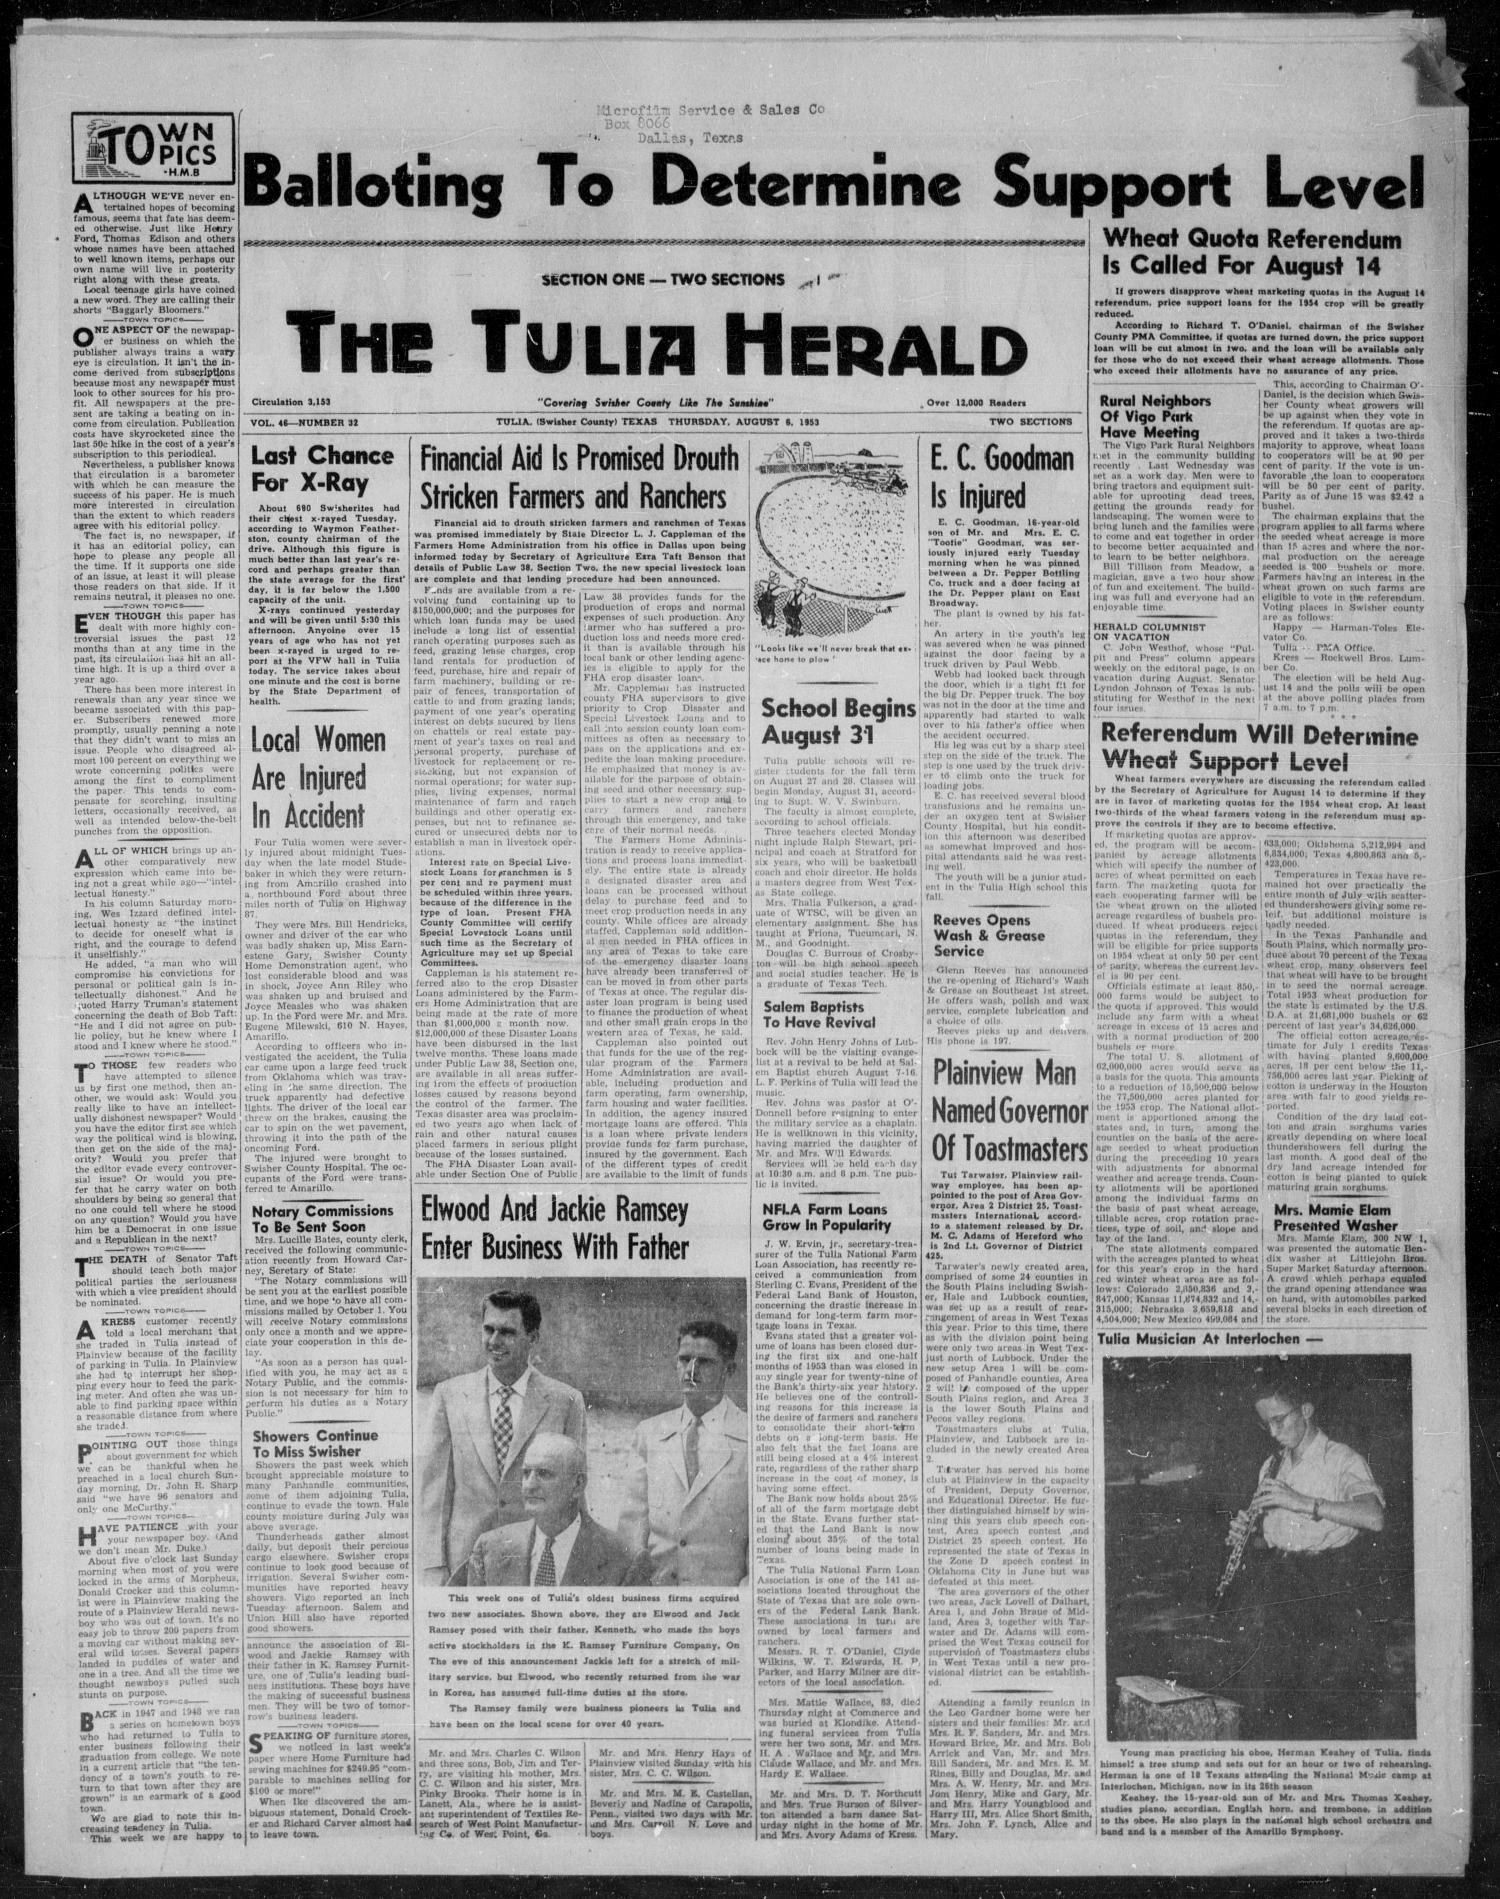 The Tulia Herald (Tulia, Tex), Vol. 46, No. 32, Ed. 1, Thursday, August 6, 1953                                                                                                      1